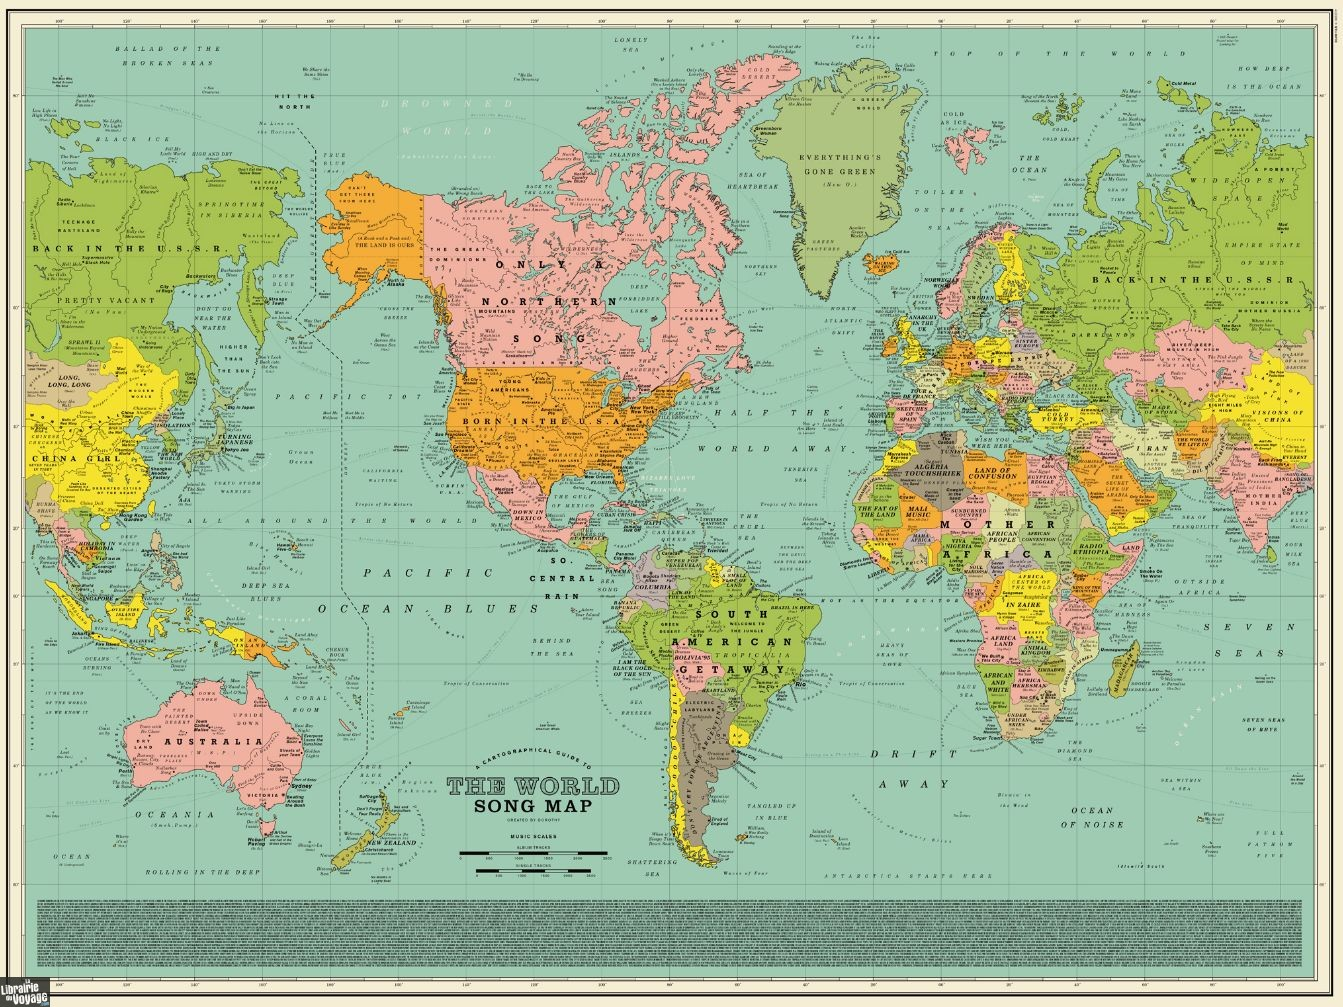 Carte Monde Murale Dorothy Carte Murale World Song Map Carte Du Monde Des Titres